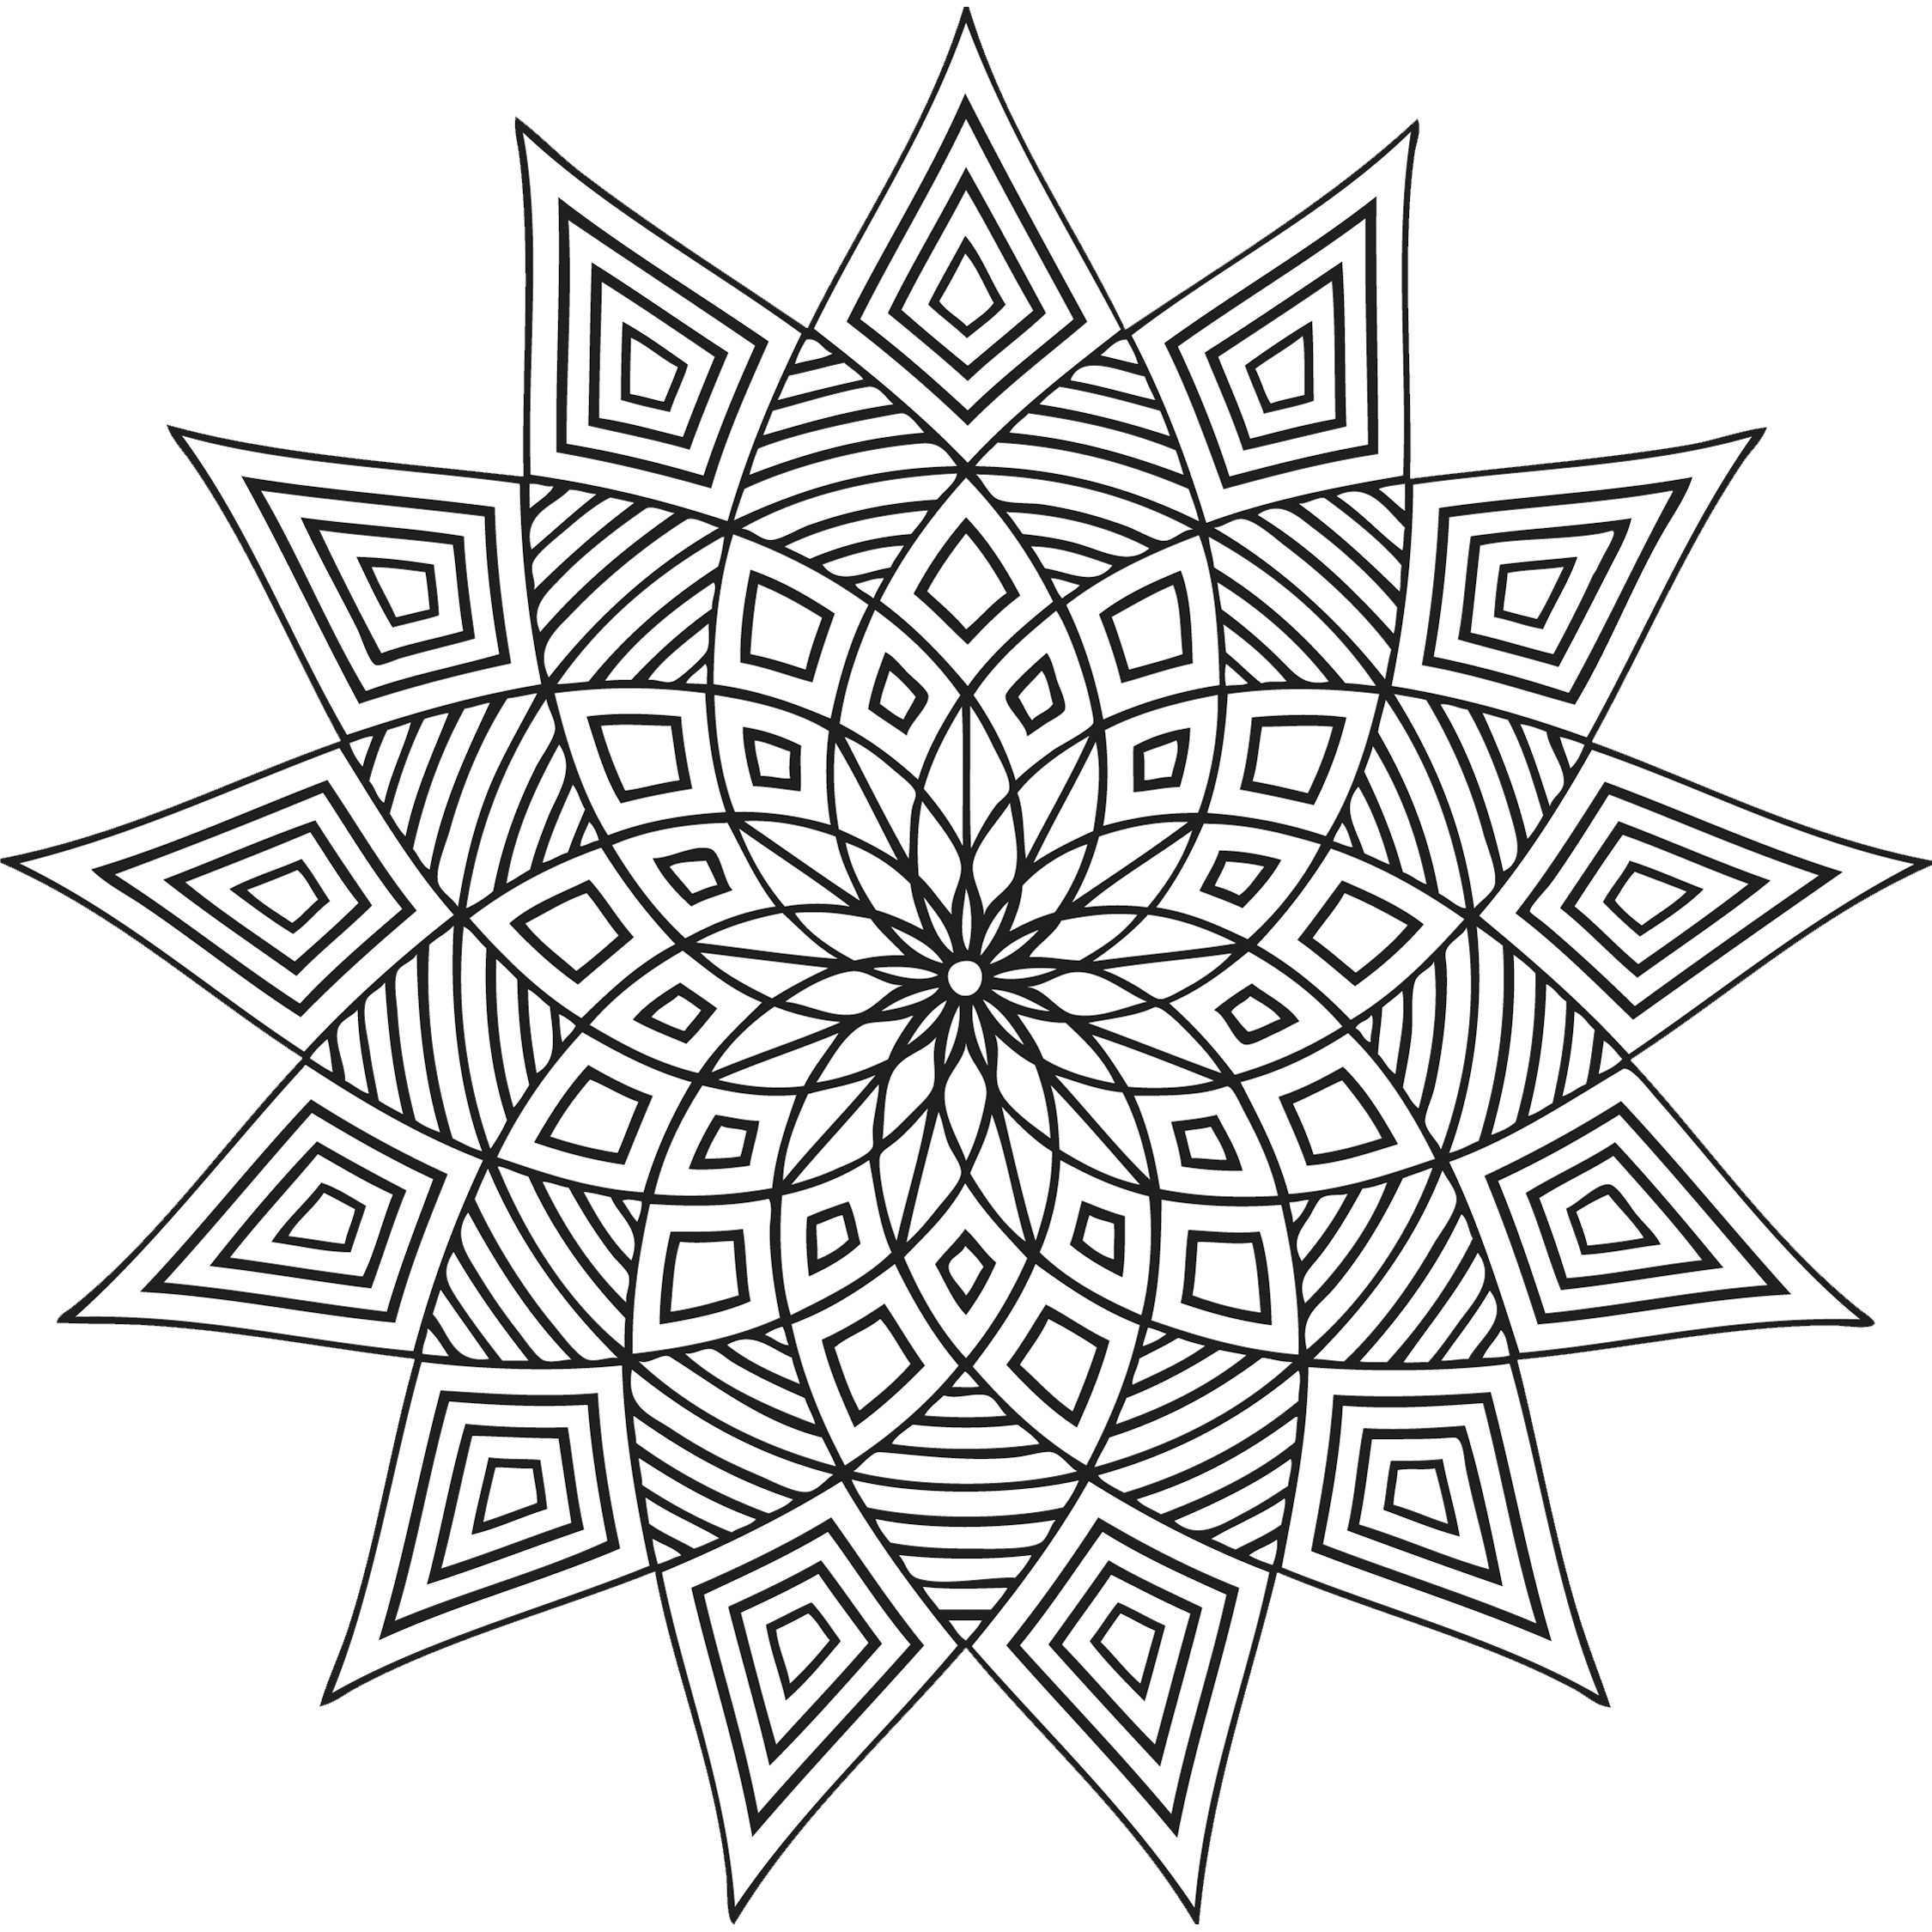 design coloring pictures 16 cool coloring pages of designs images cool geometric coloring design pictures